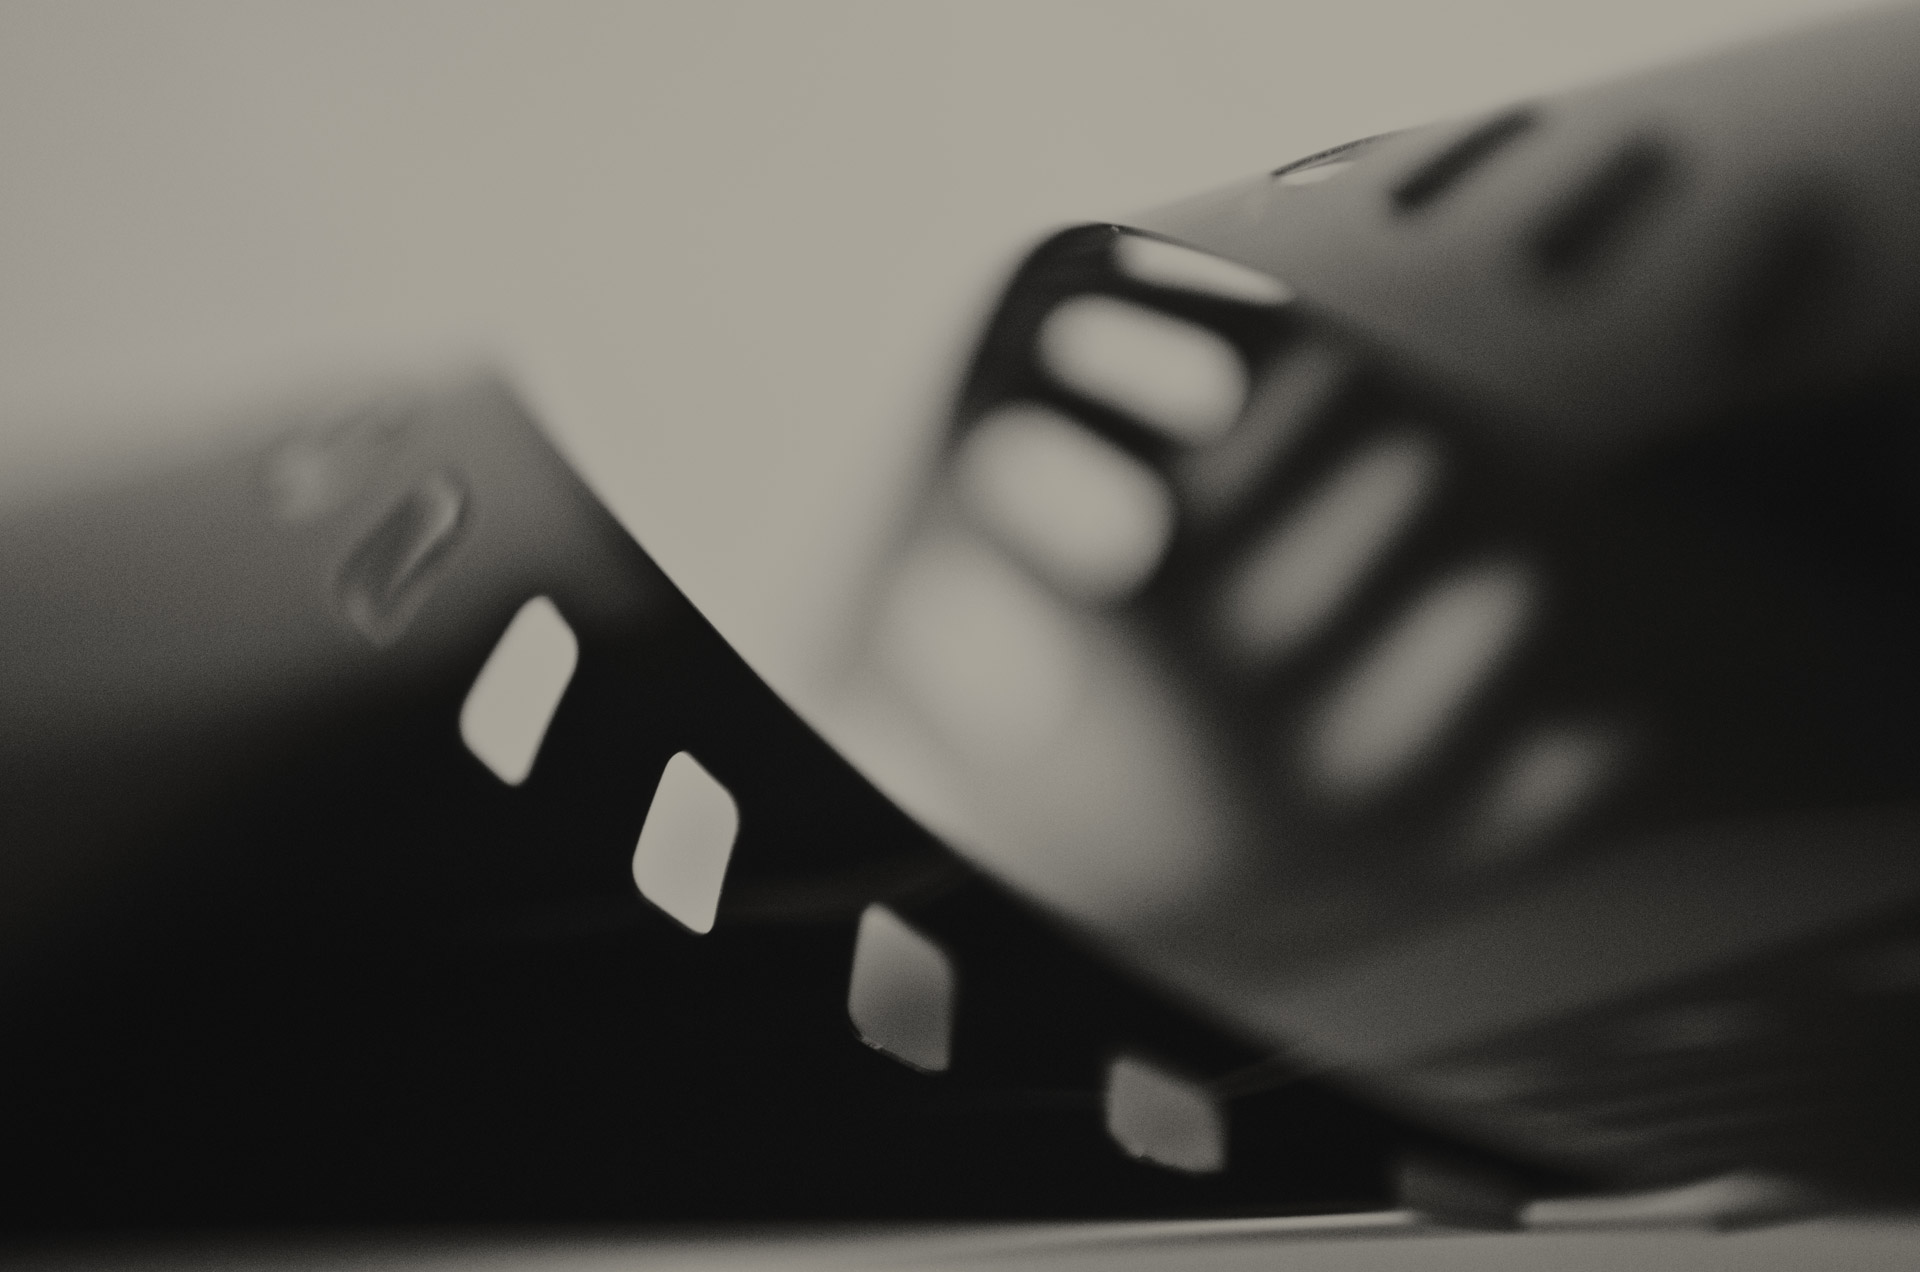 Film - Background Free Stock Photo - Public Domain Pictures